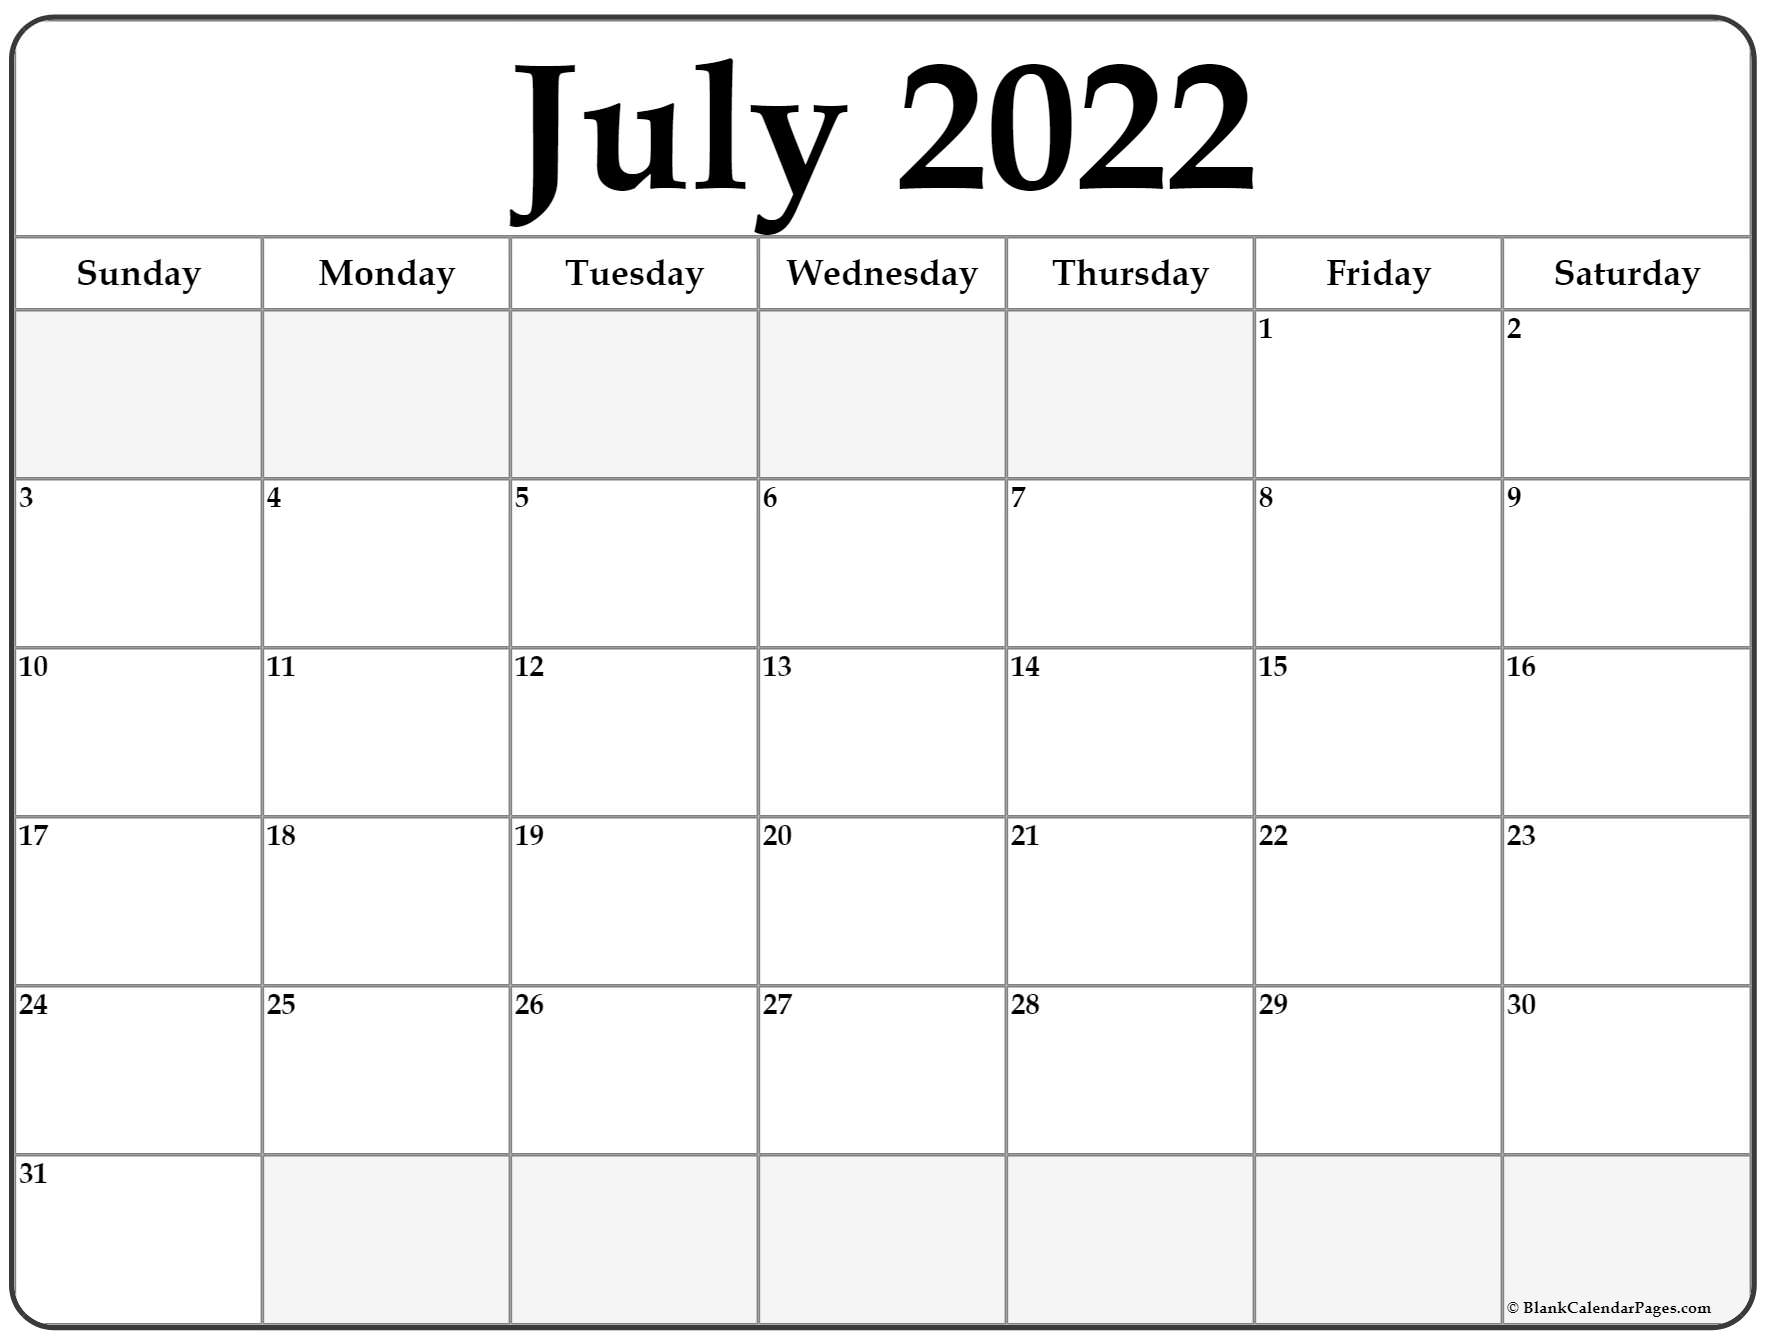 July 2022 calendar | free printable monthly calendars